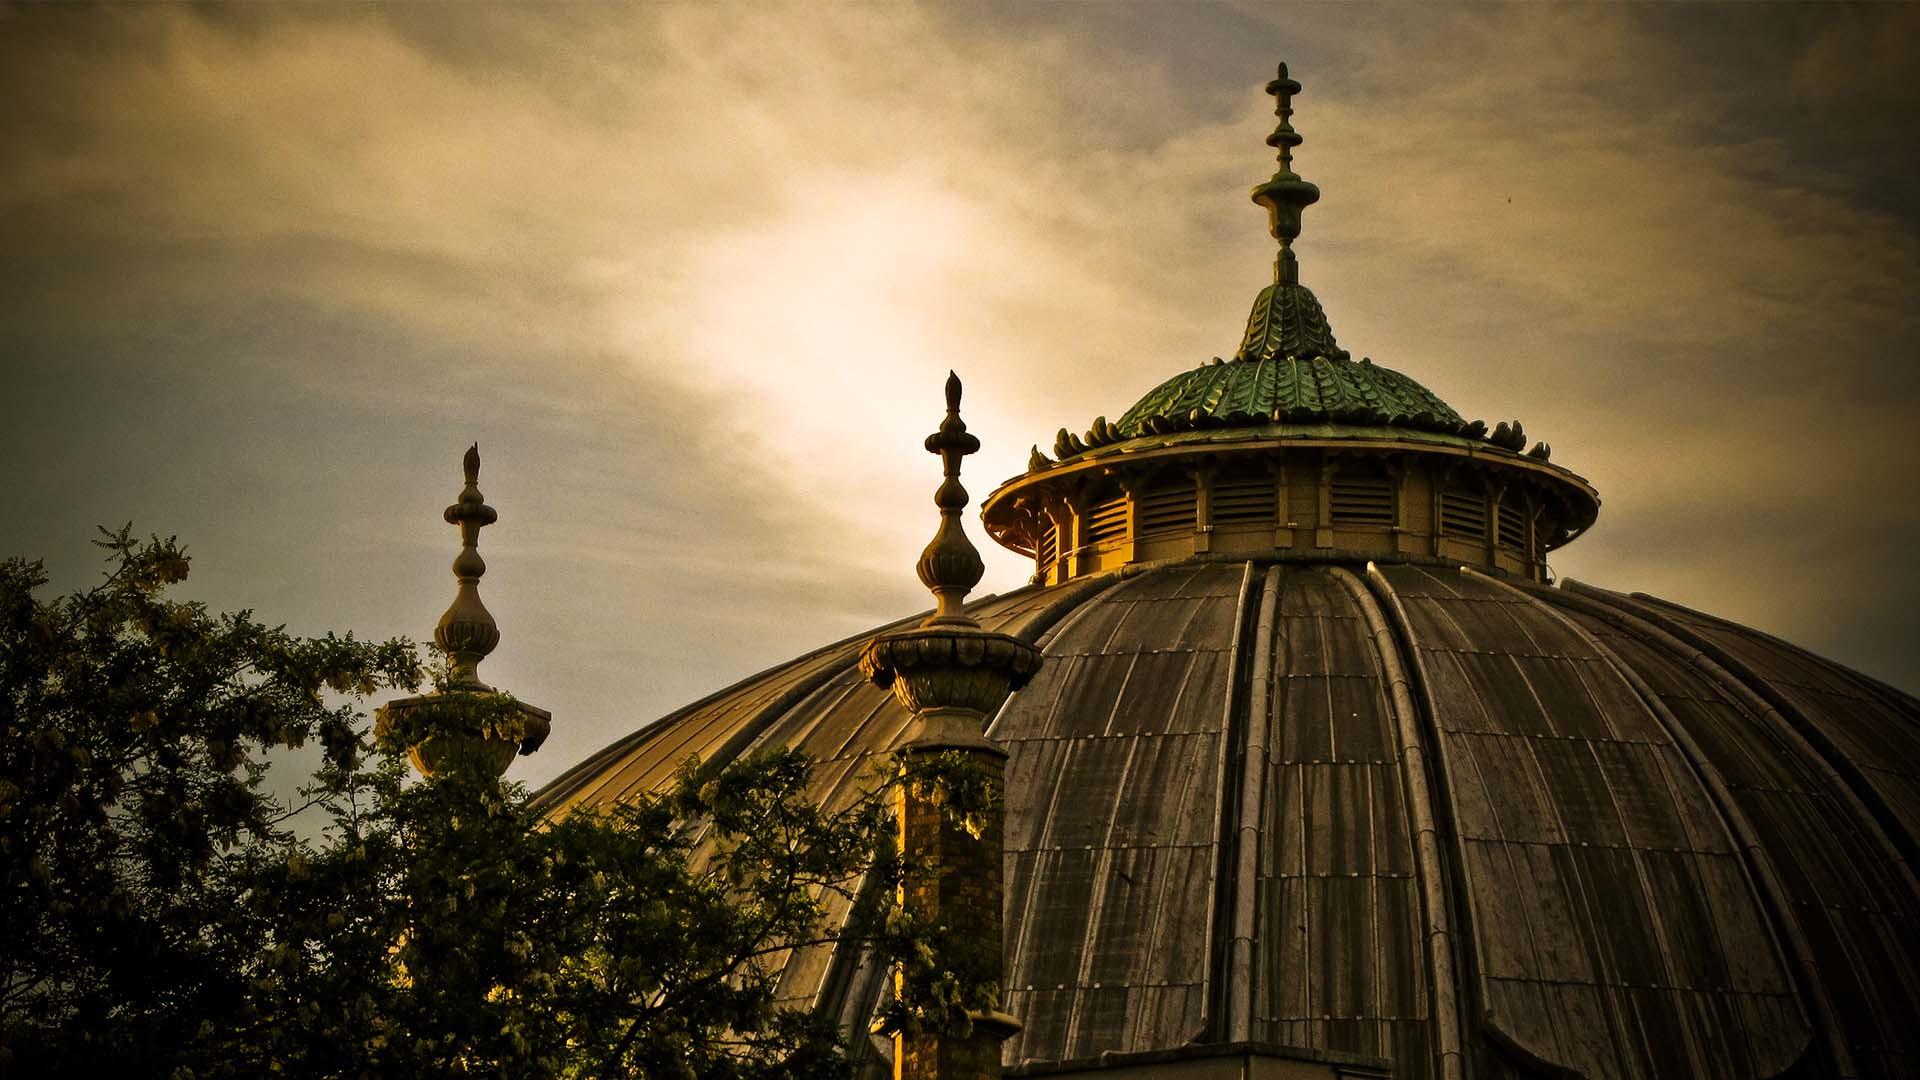 Brighton Dome at sunset